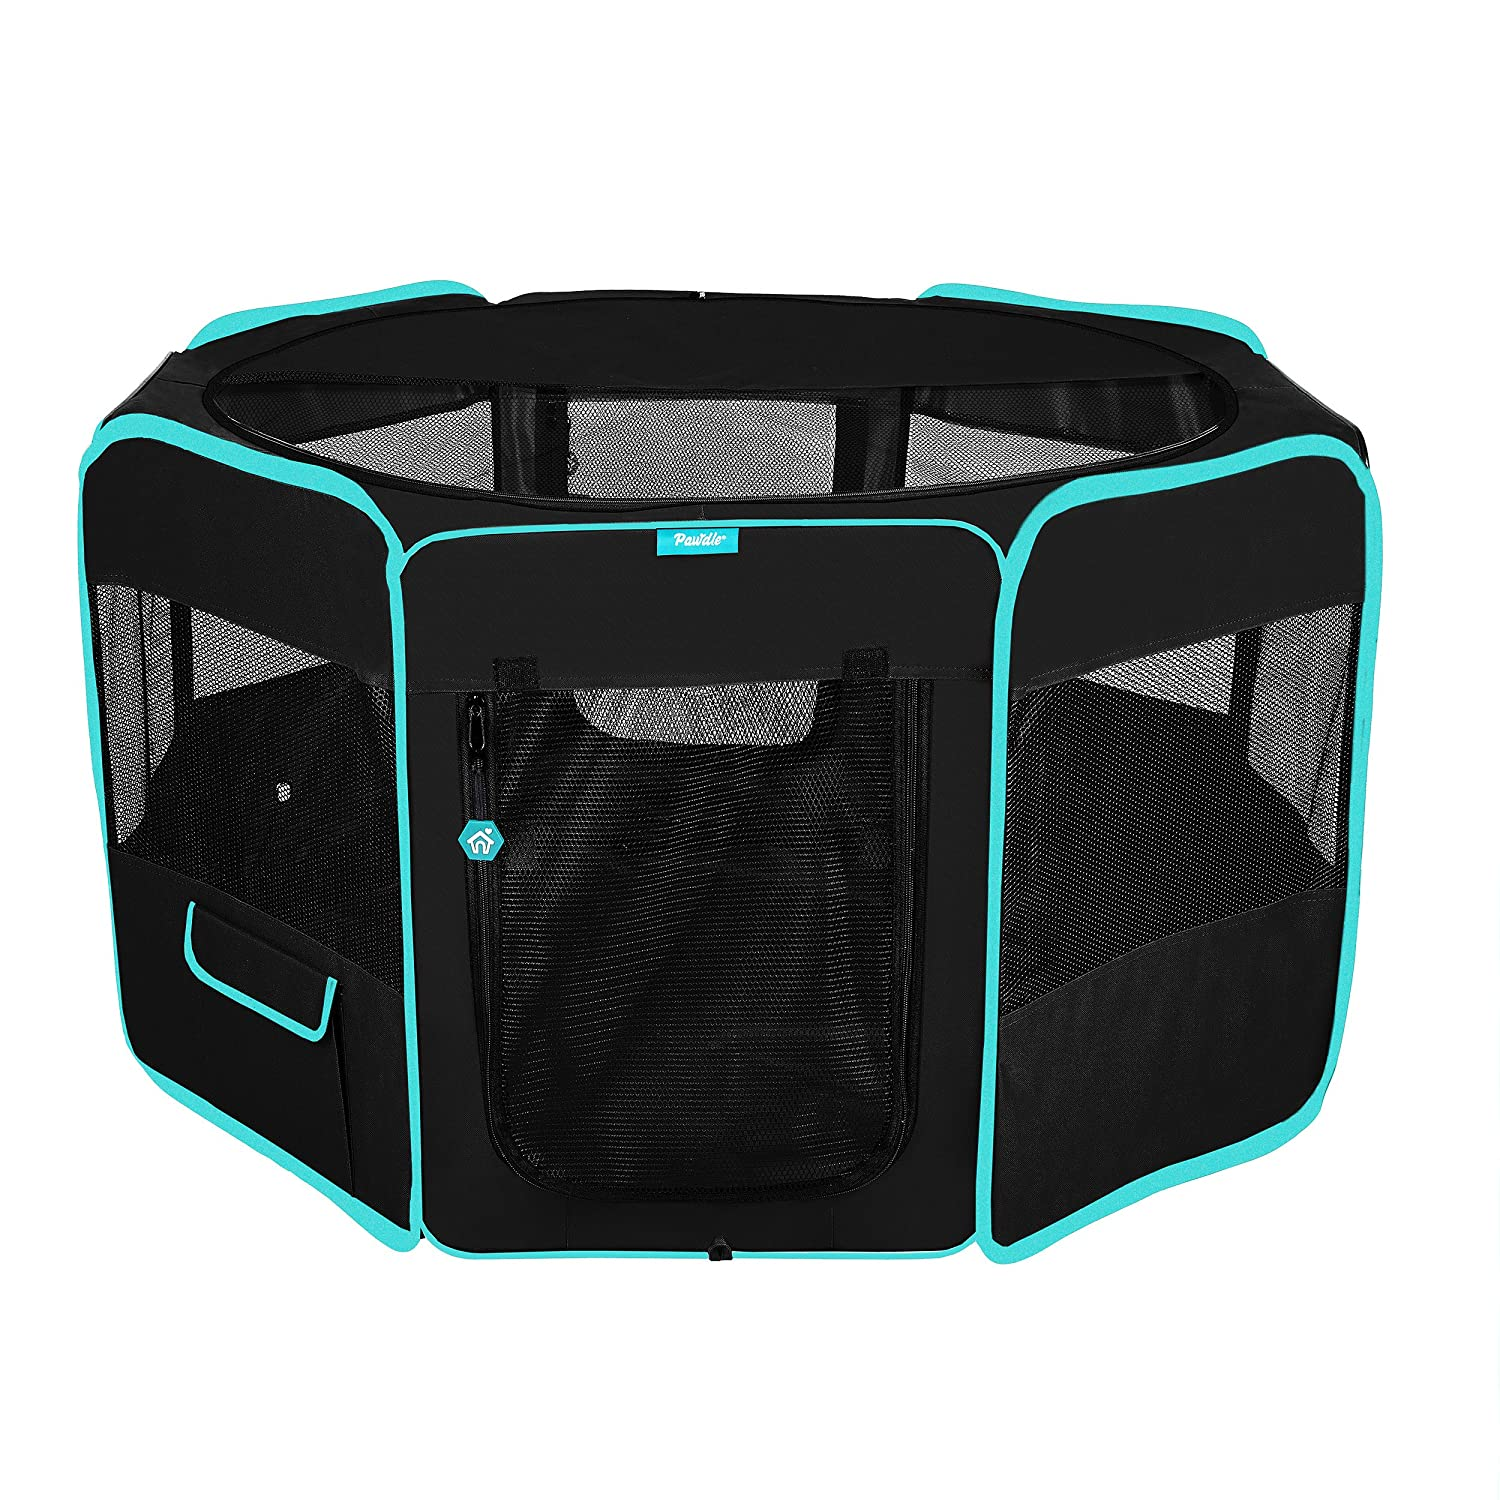 Black L Black L DELUXE PREMIUM Pet Dog Playpen Portable Soft Dog Exercise Pen Kennel with Carry Bag for Dogs, Cats, Kittens, and all Pets (Large, Black)